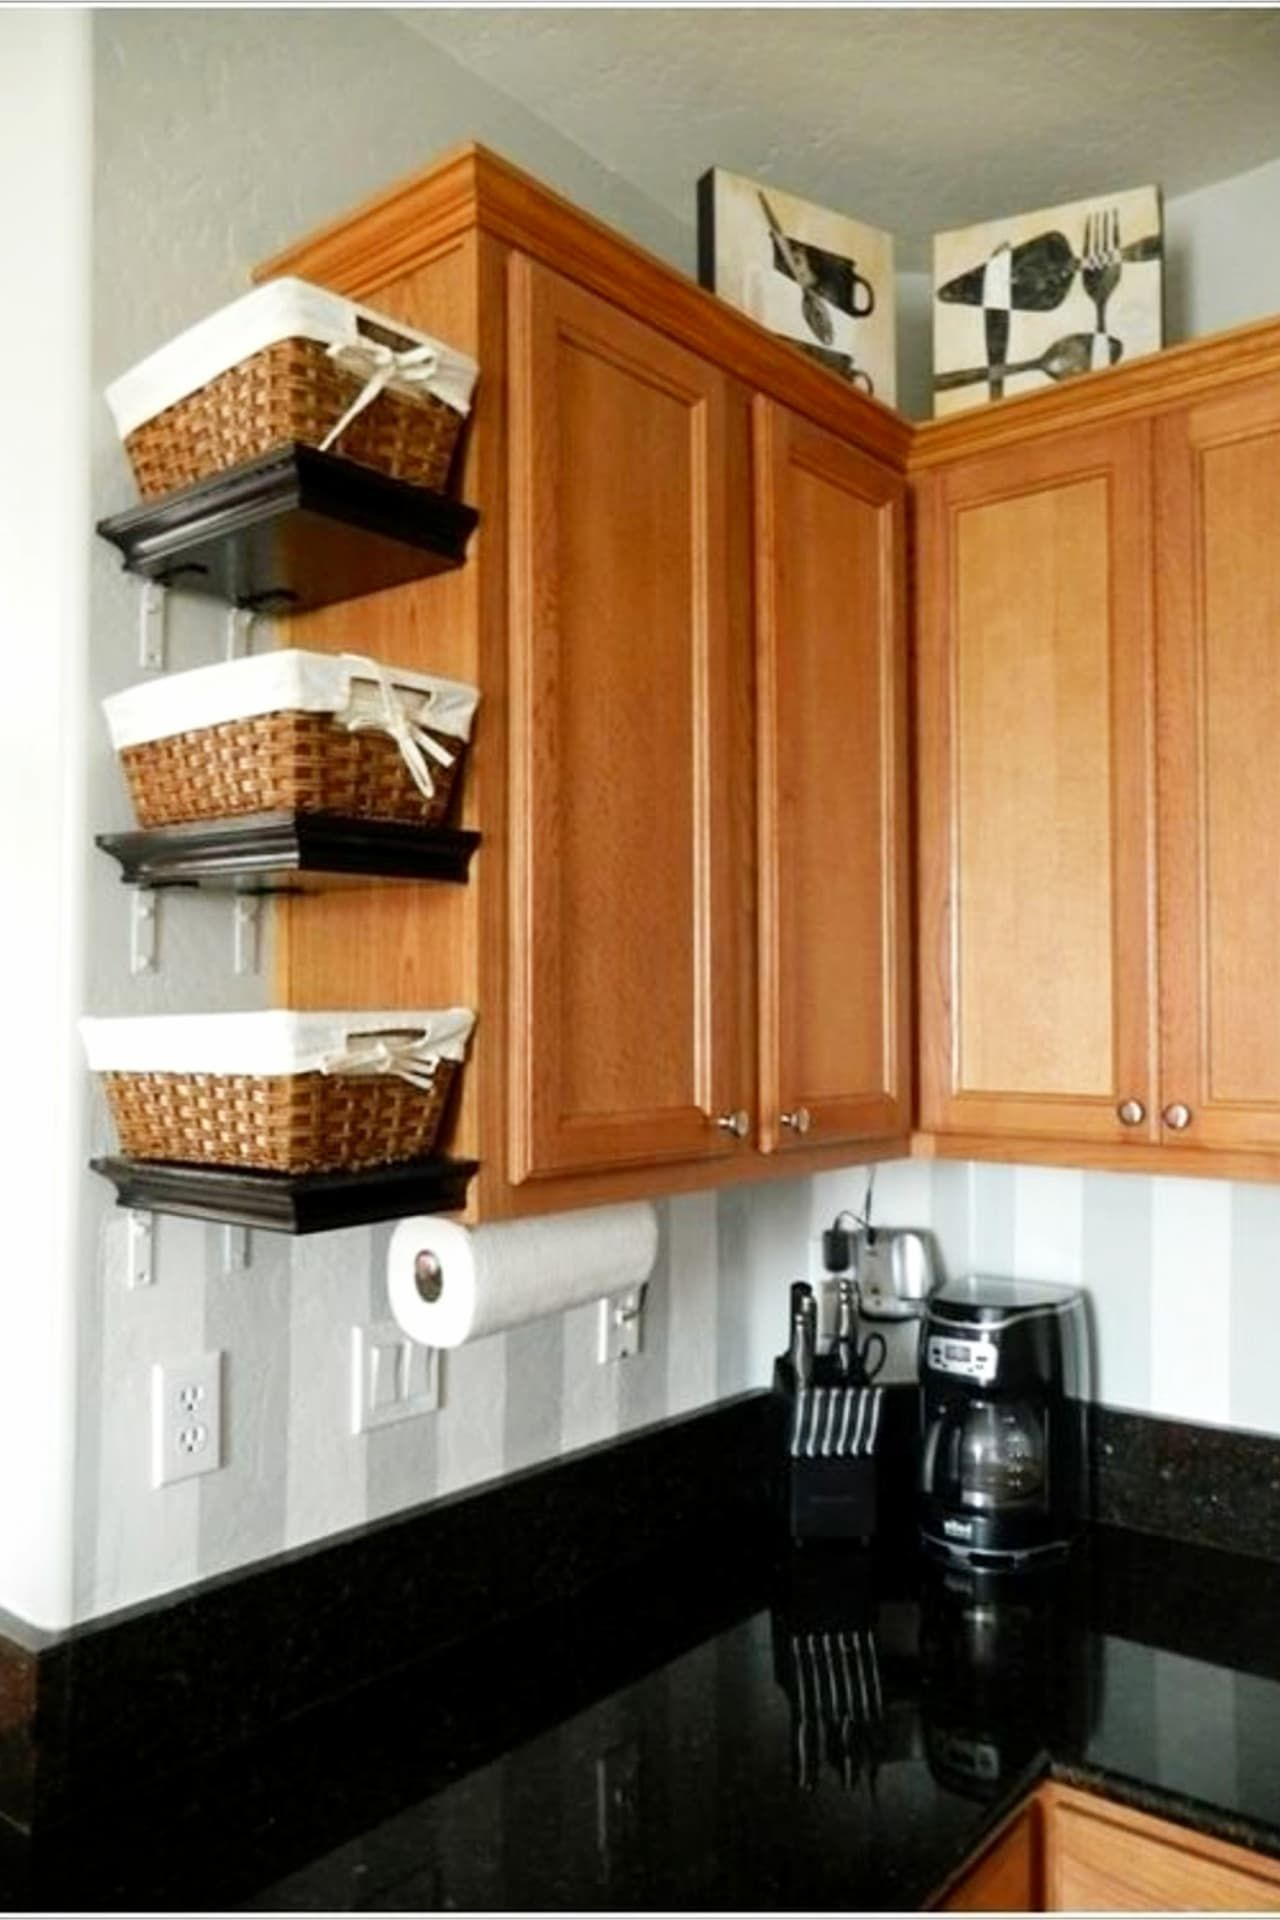 Declutter Your Kitchen - DIY Shelves To Organize a Country Farmhouse Kitchen on a Budget images